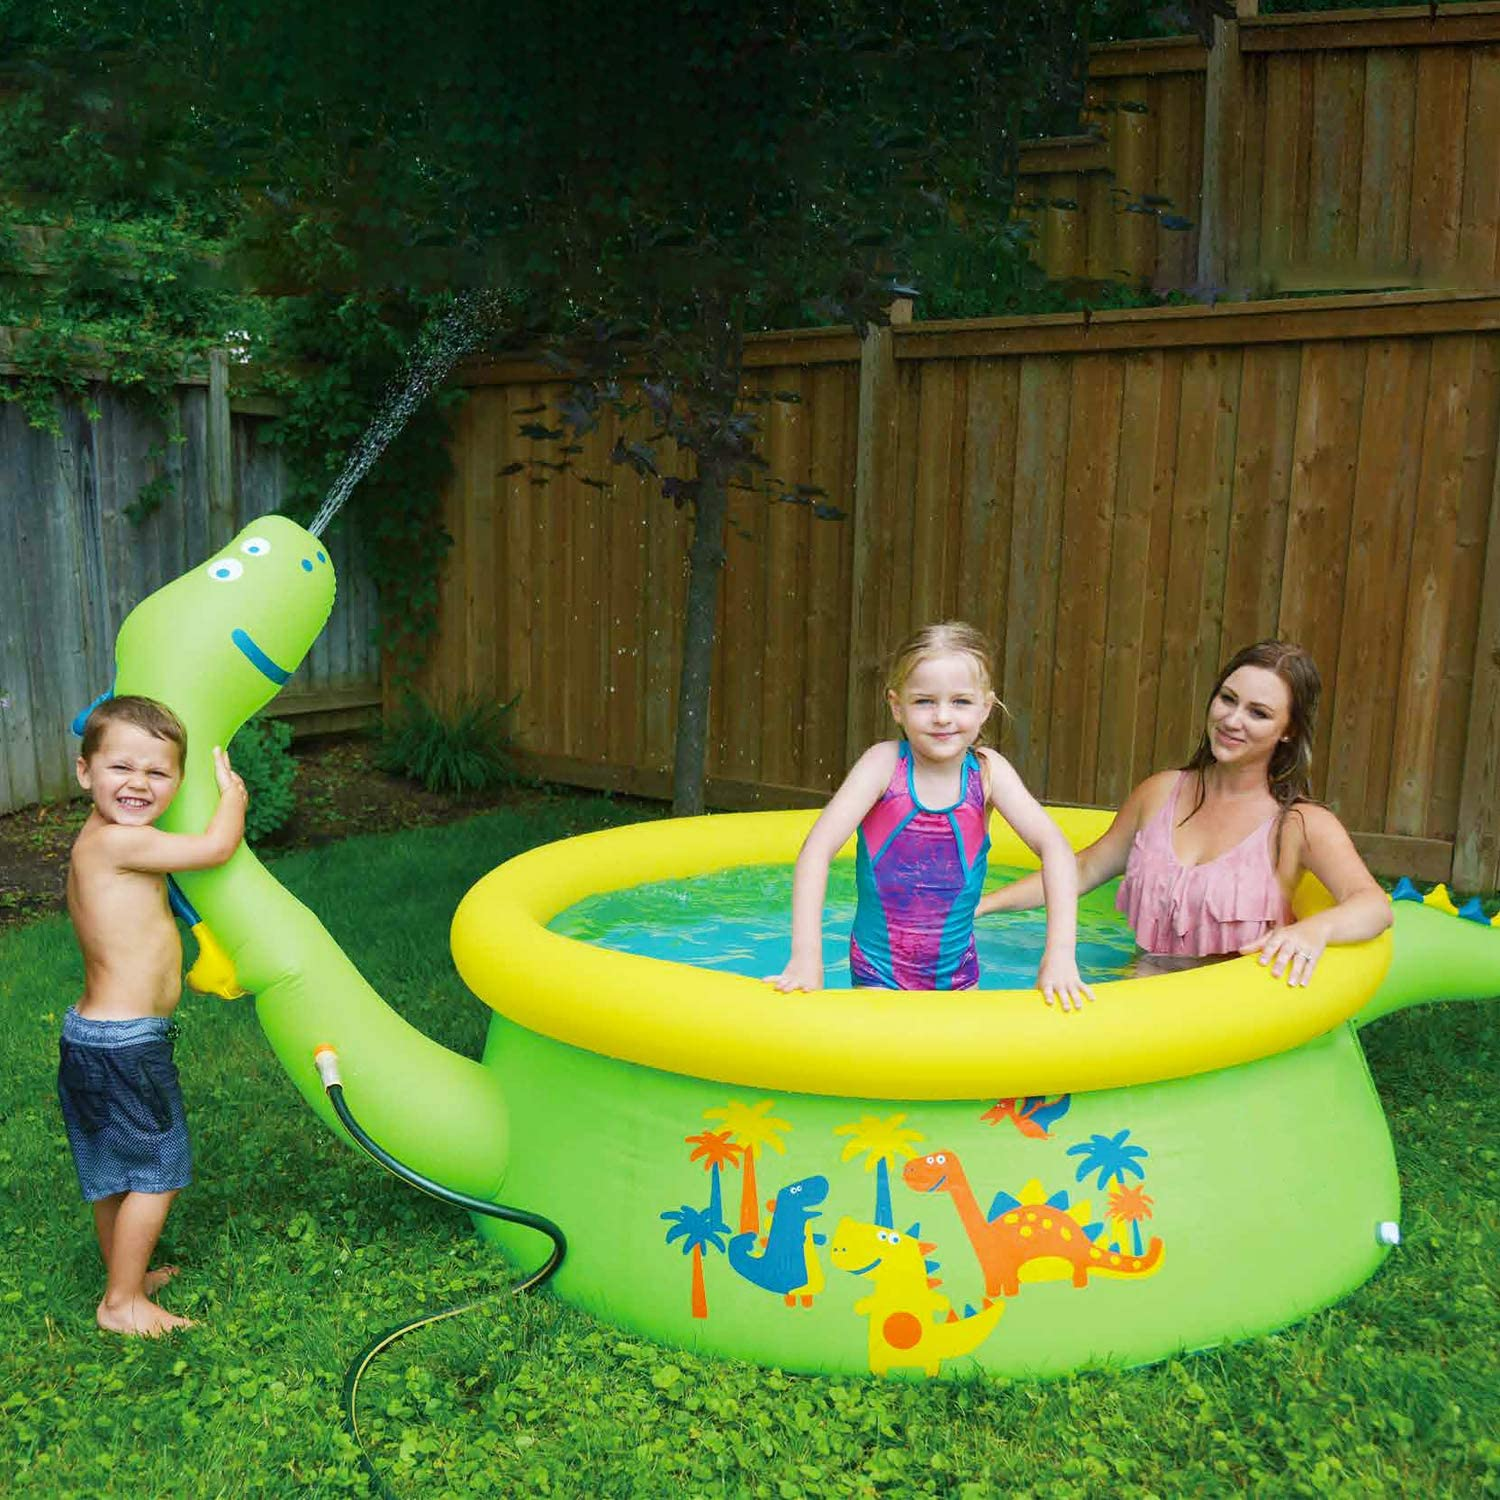 Kiddie Pool for Age 3+ Size 69 X 24.5 Dinosaur Pool Sprinkler Water Toys Lunvon Inflatable Swimming Pool for Kids